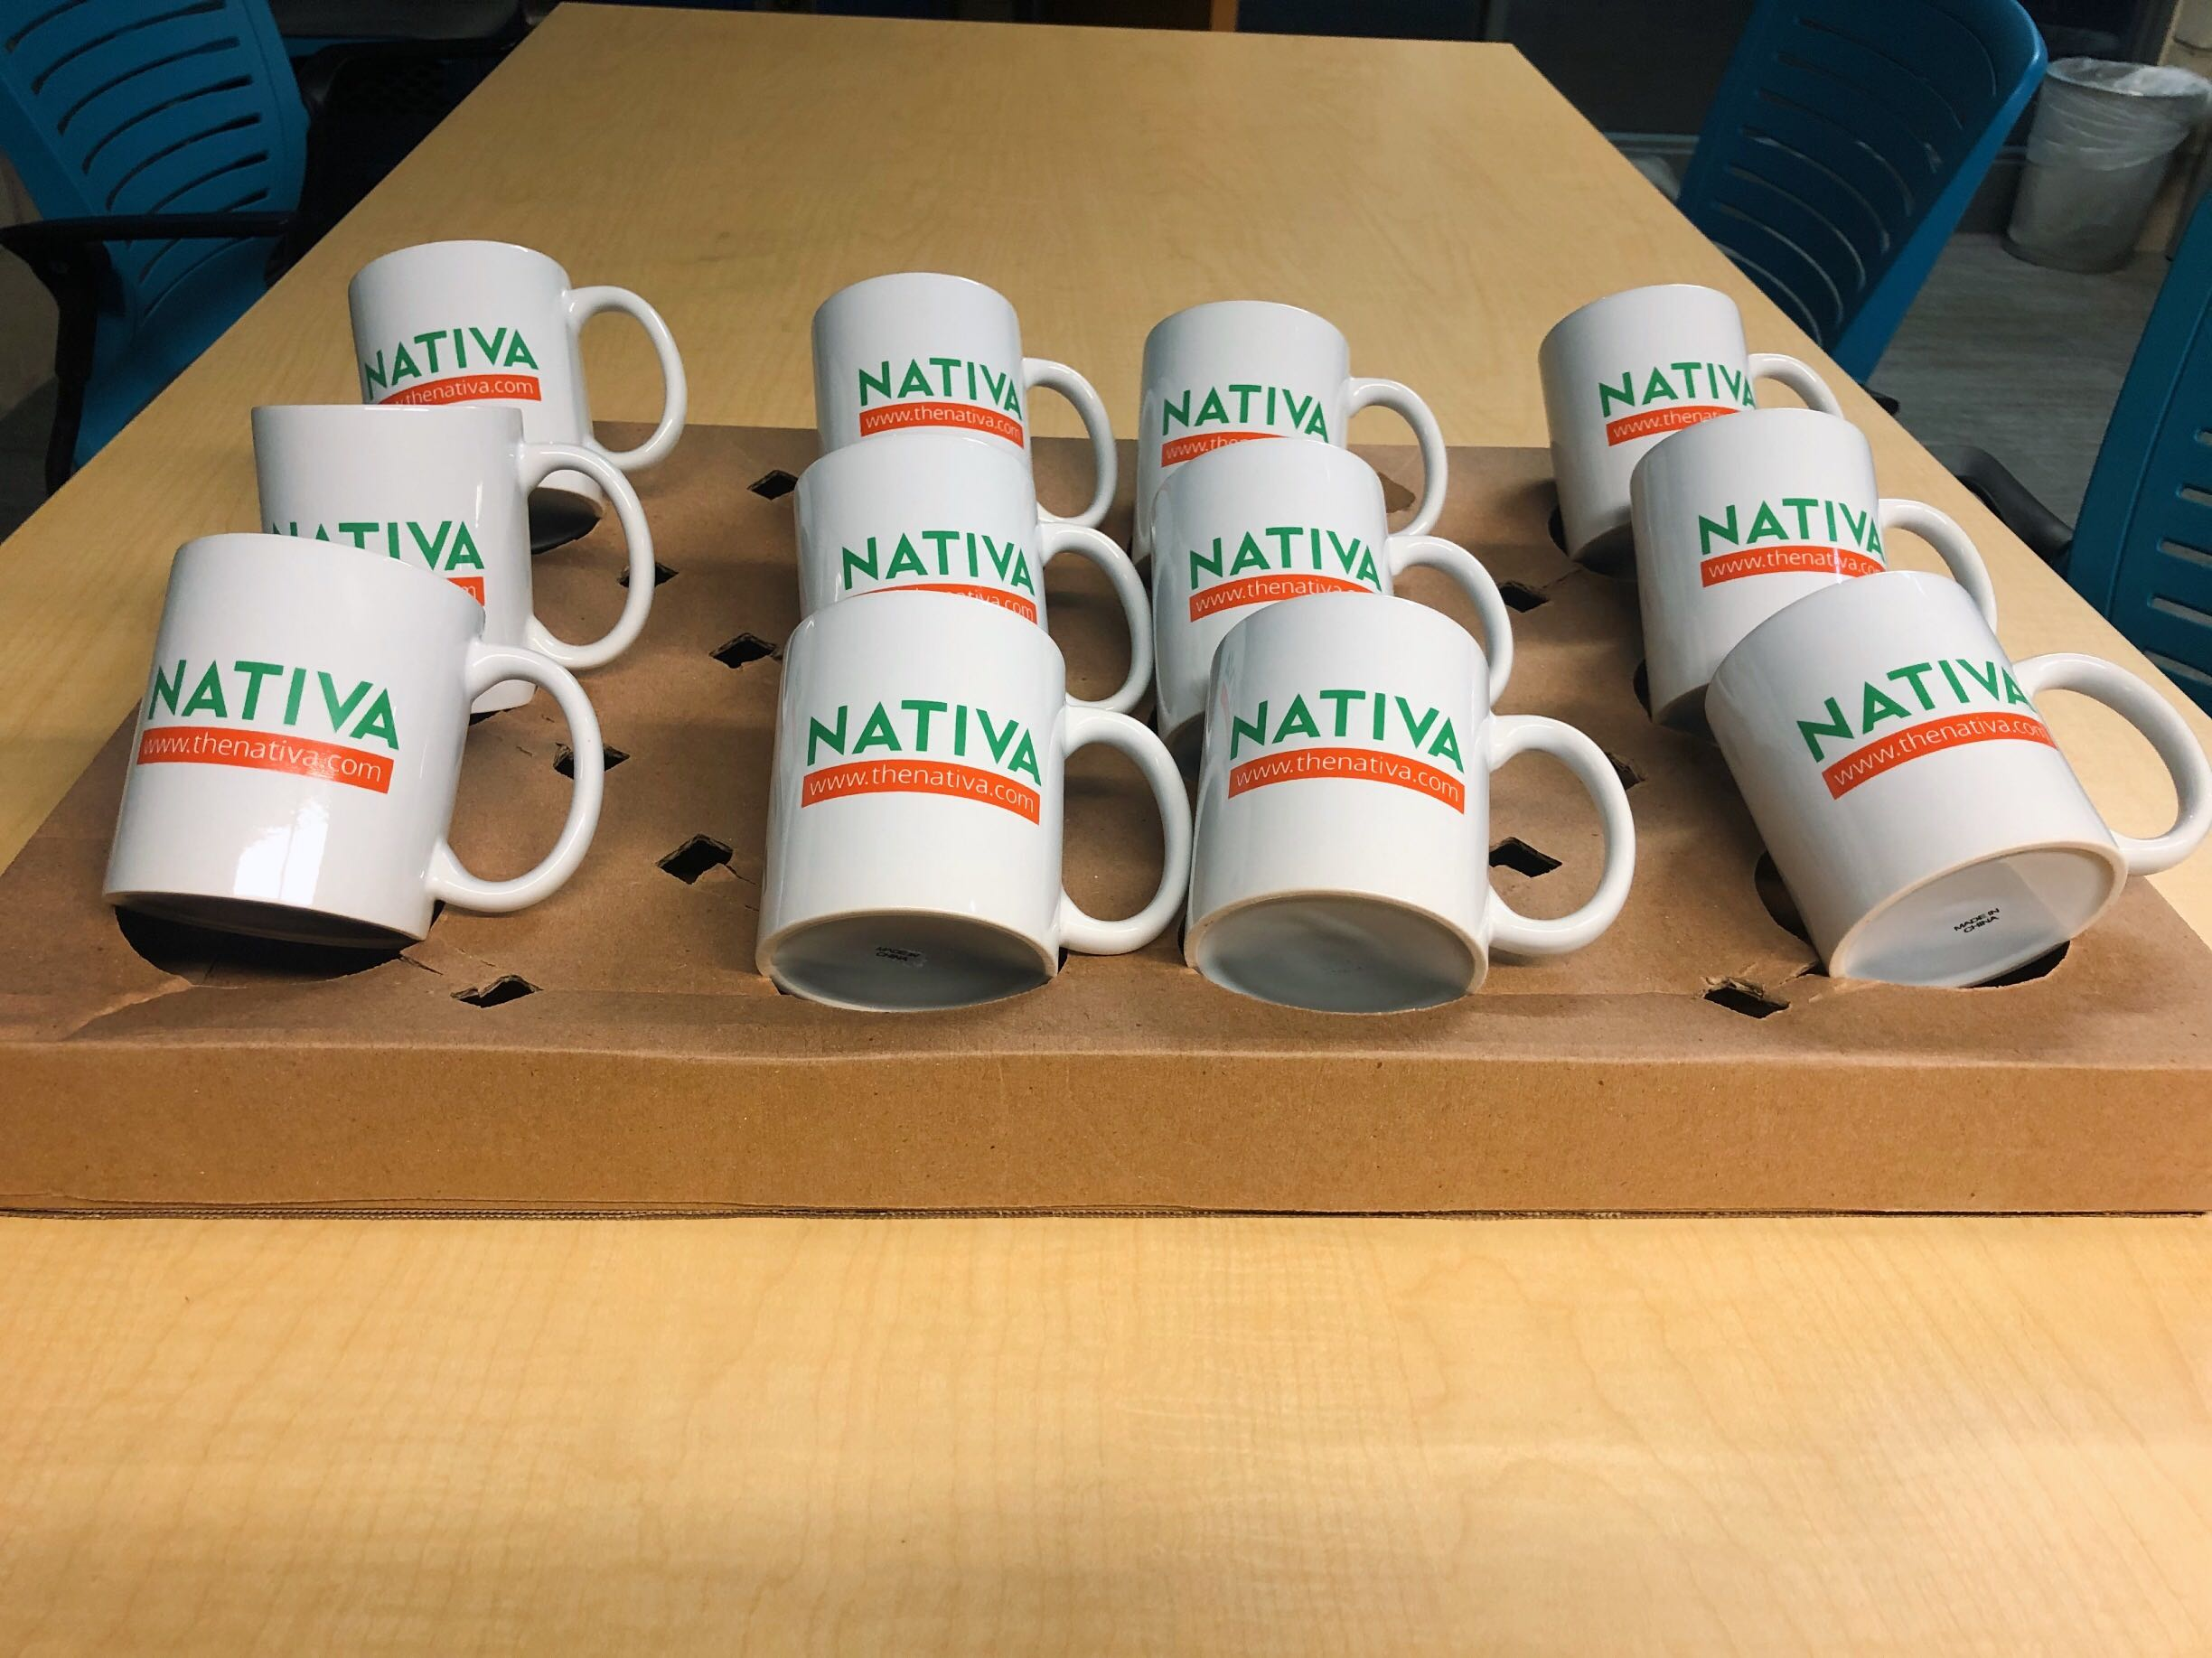 Multicultural Lunch and Learn with Nativa: Data-Driven Insights